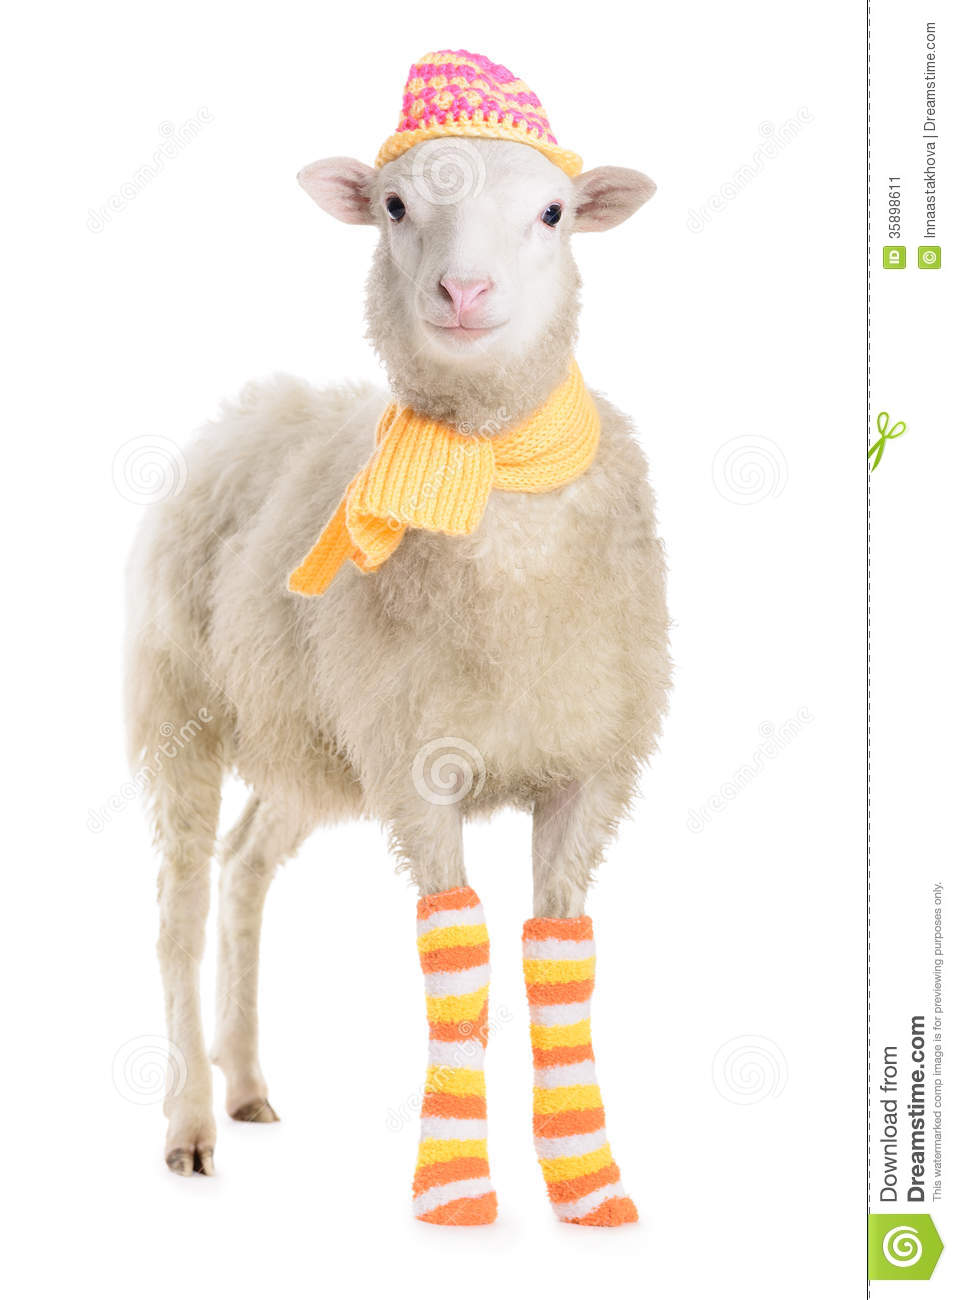 sheep in clothes stock image image 35898611 martin luther king clip art free martin luther king clip art